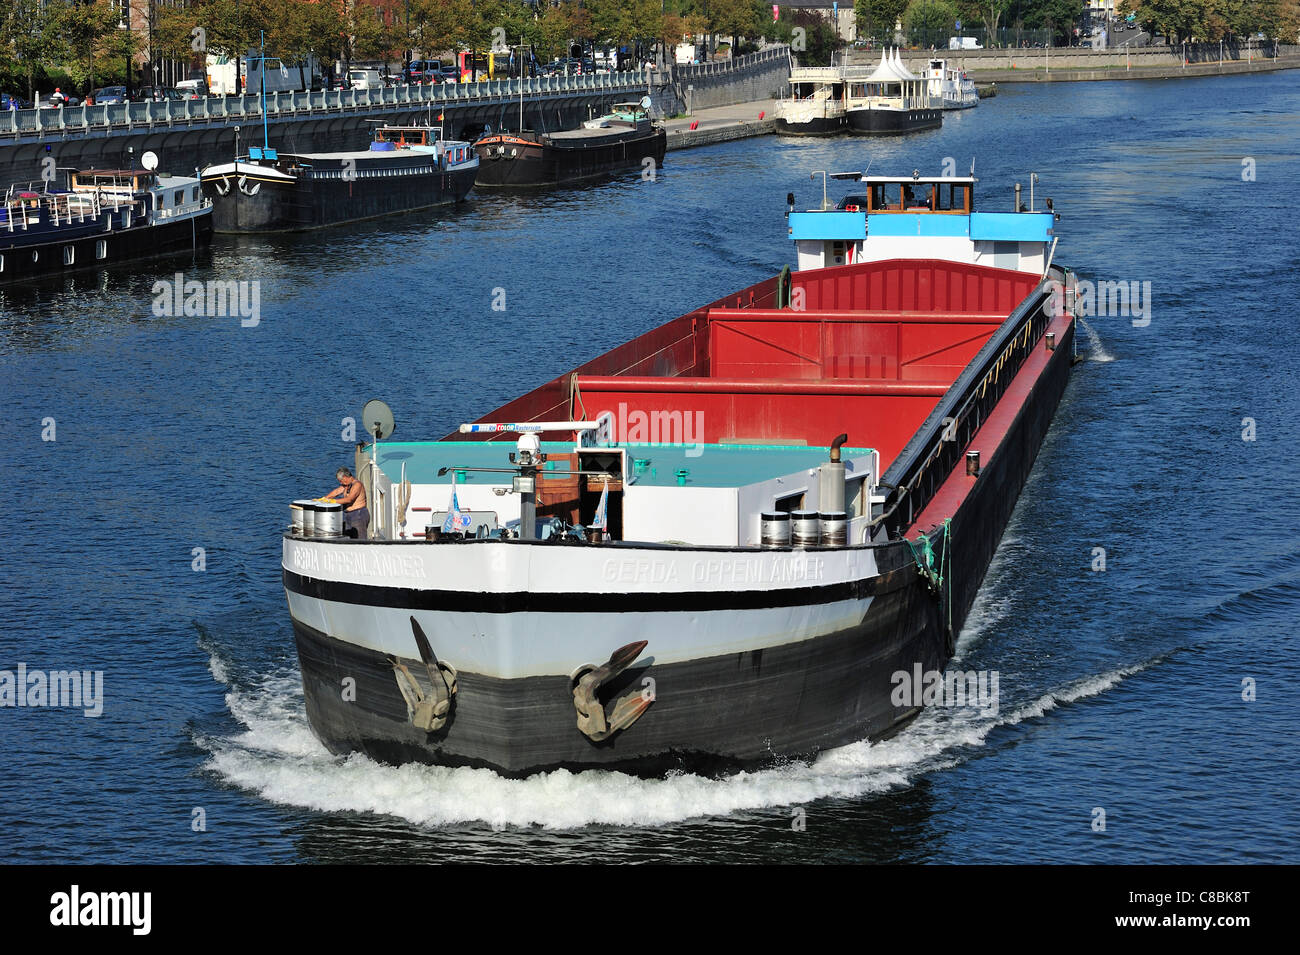 Empty inland vessel / canal barge on the river Meuse at Namur, Belgium - Stock Image